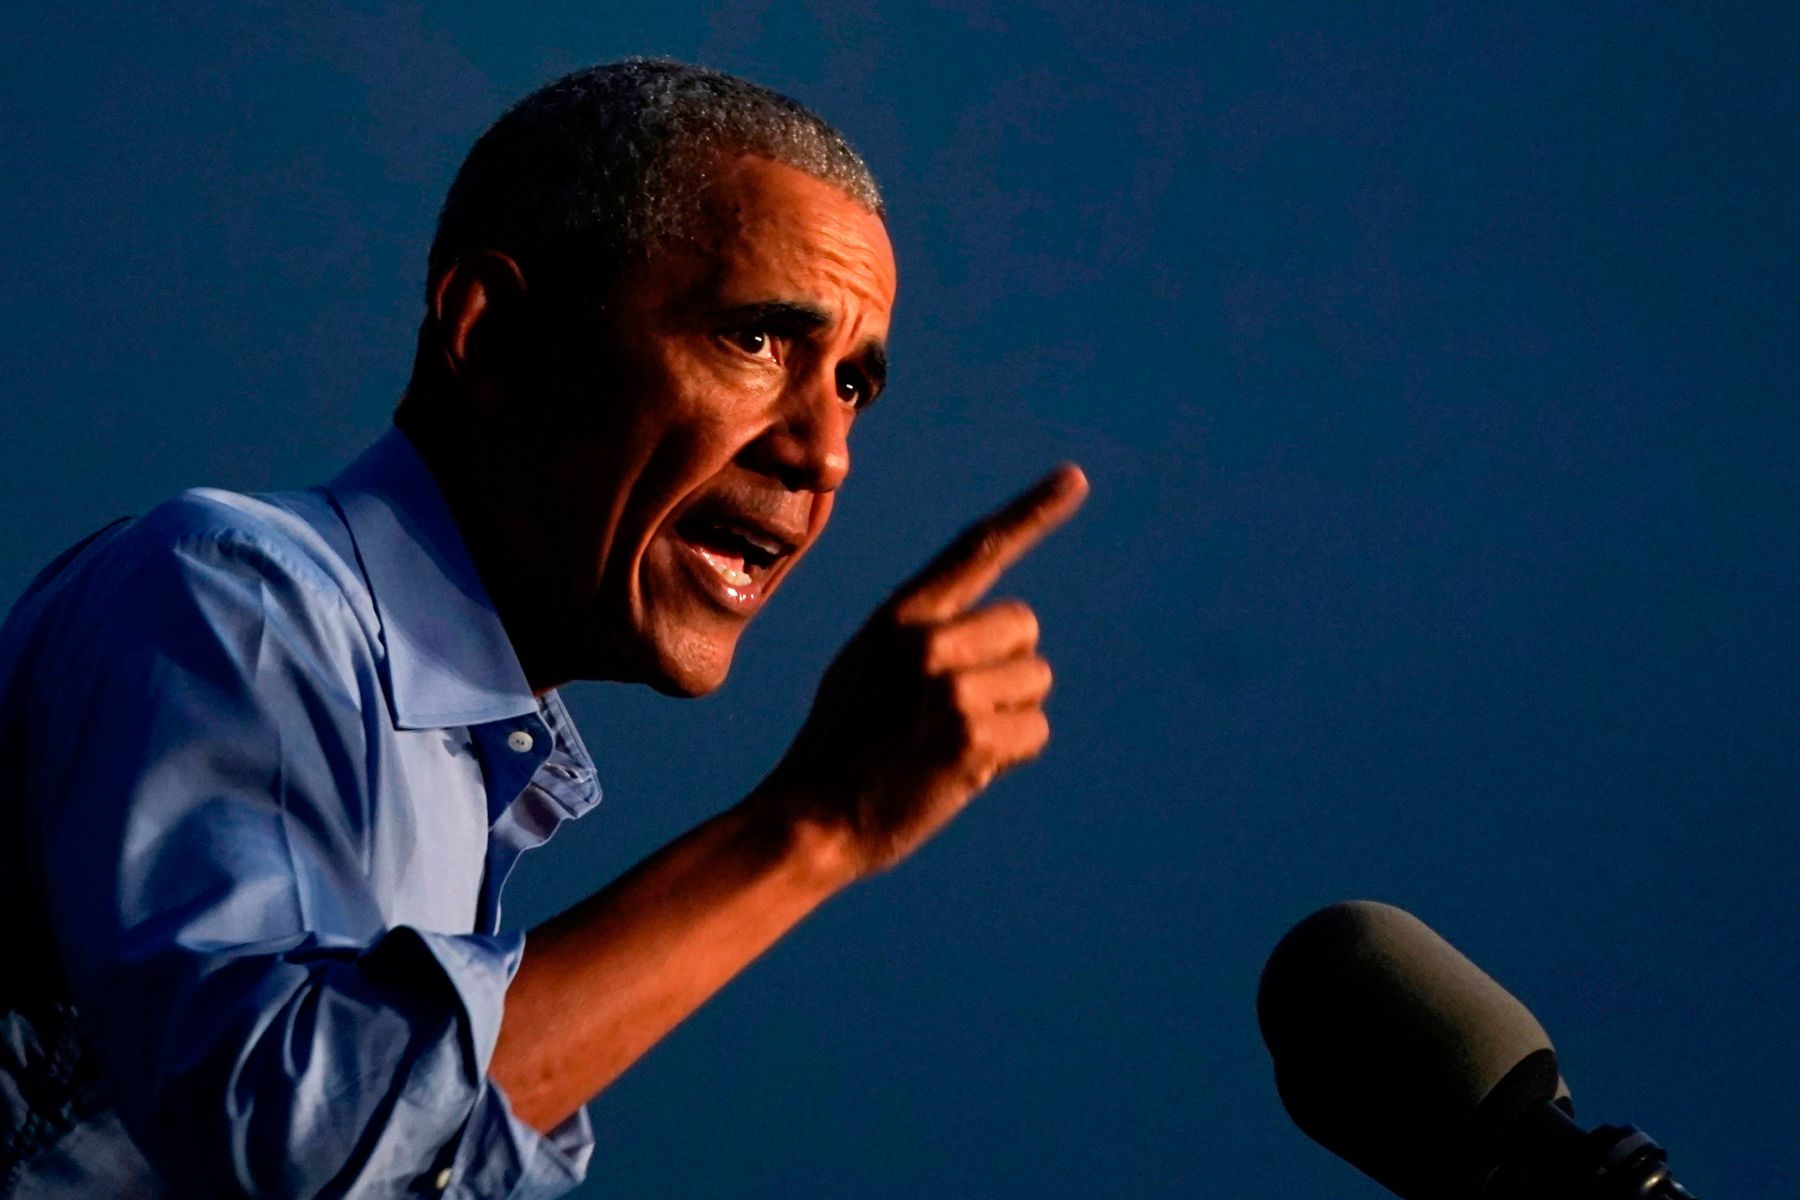 Former US President Barack Obama addresses Biden-Harris supporters during a drive-in rally in Philadelphia, Pennsylvania on October 21, 2020. - Former US president Barack Obama hit the campaign trail for Joe Biden today in a bid to drum up support for his former vice president among young Americans and Black voters in the final stretch of the White House race. (Photo by Alex Edelman / AFP) (Photo by ALEX EDELMAN/AFP via Getty Images)